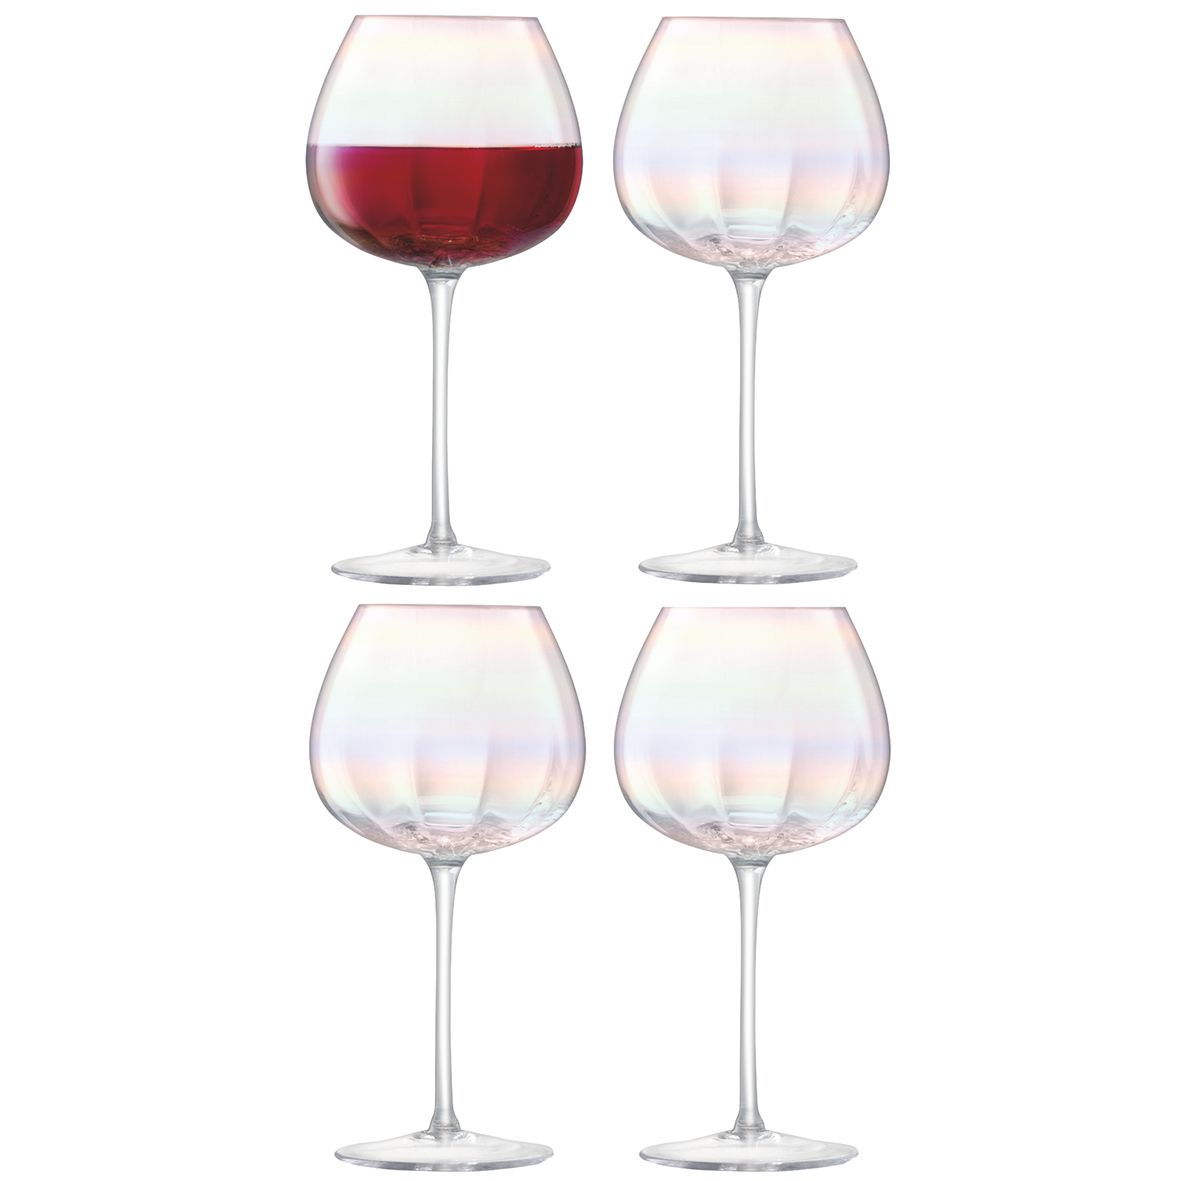 Affordable Wine Glasses Glassware Wine Glasses Shop For Cheap Glassware And Save